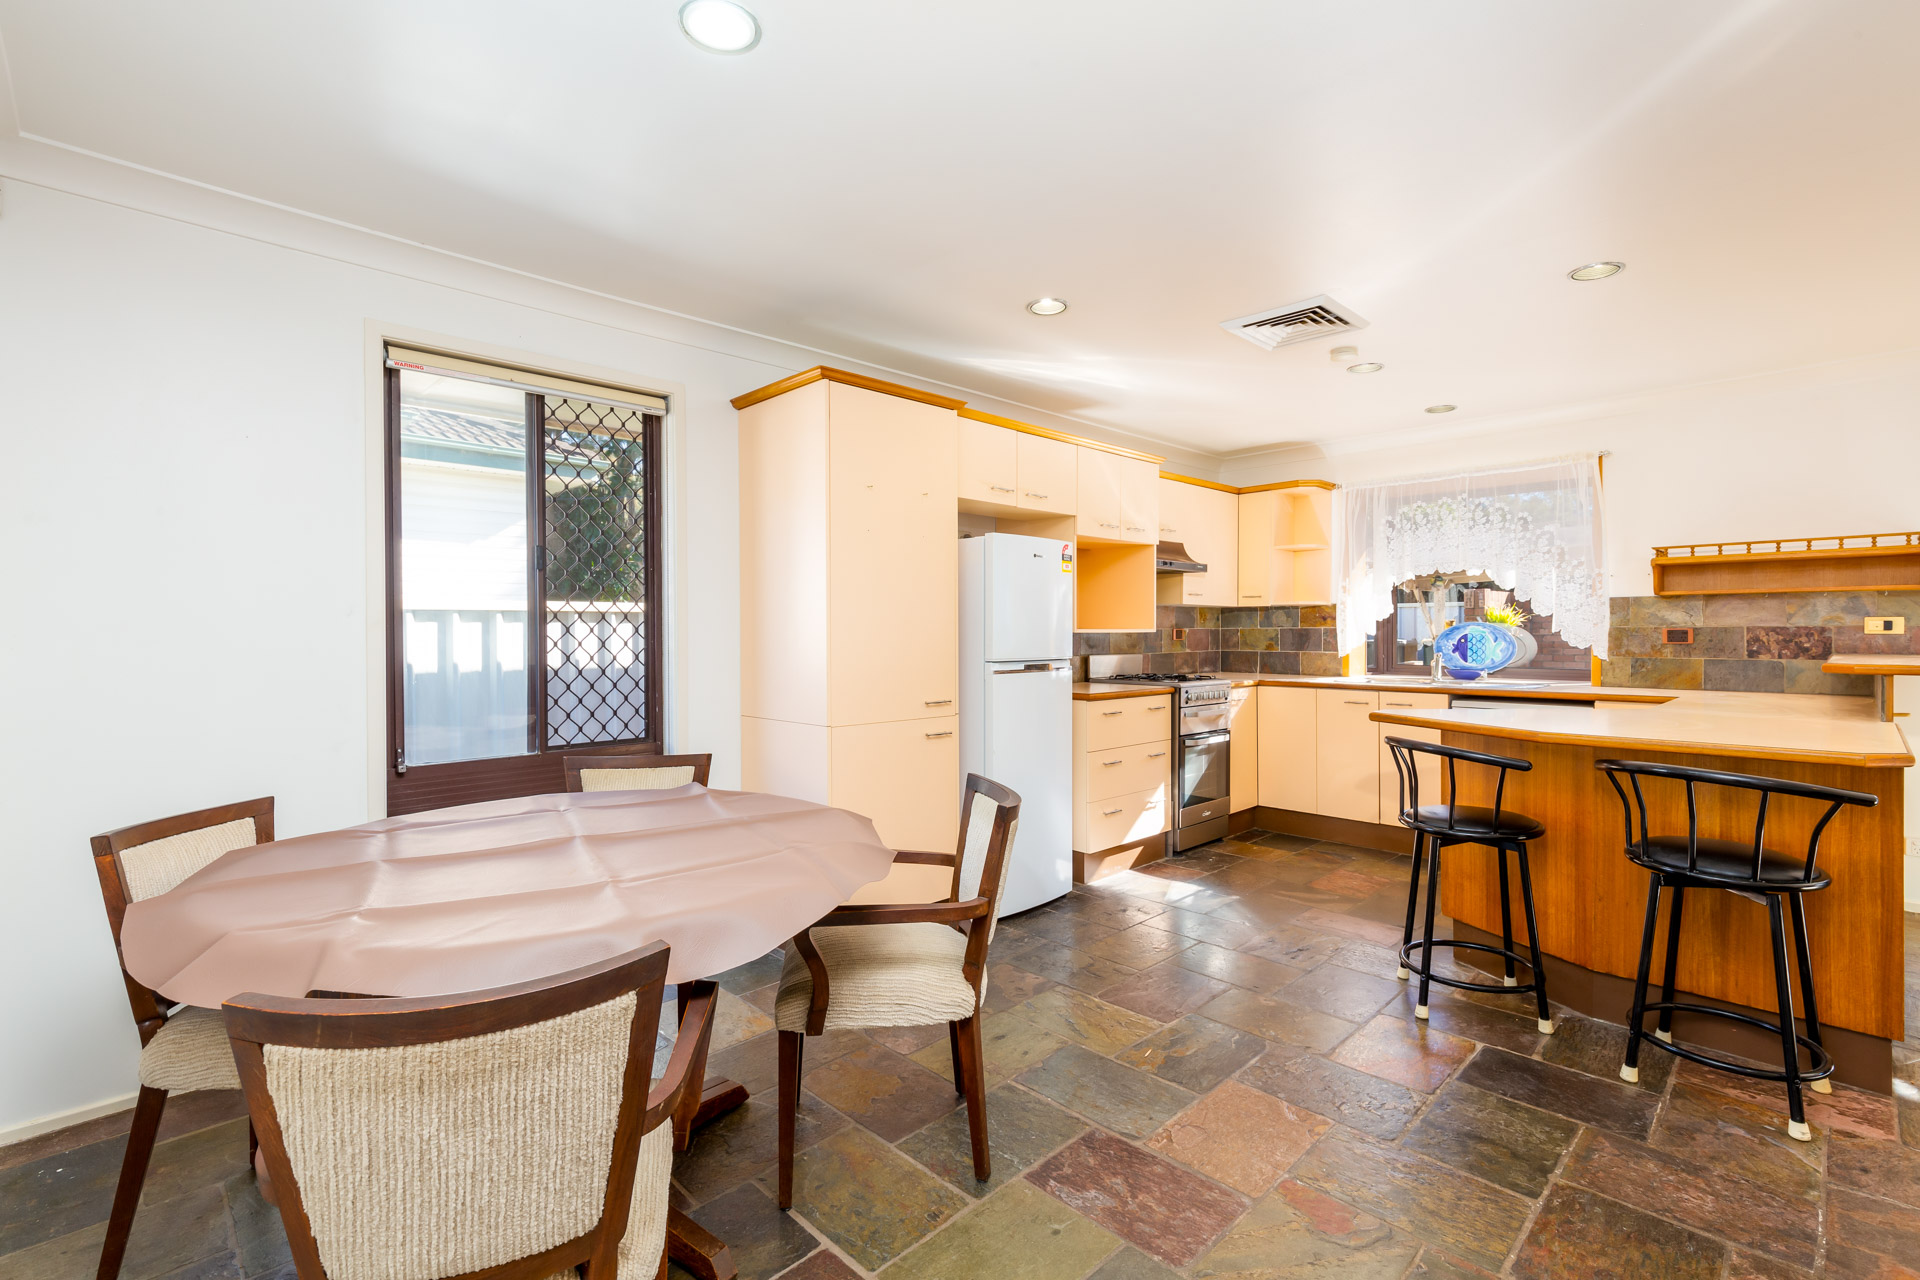 70 Medcalf St   Warners Bay (15 of 18)